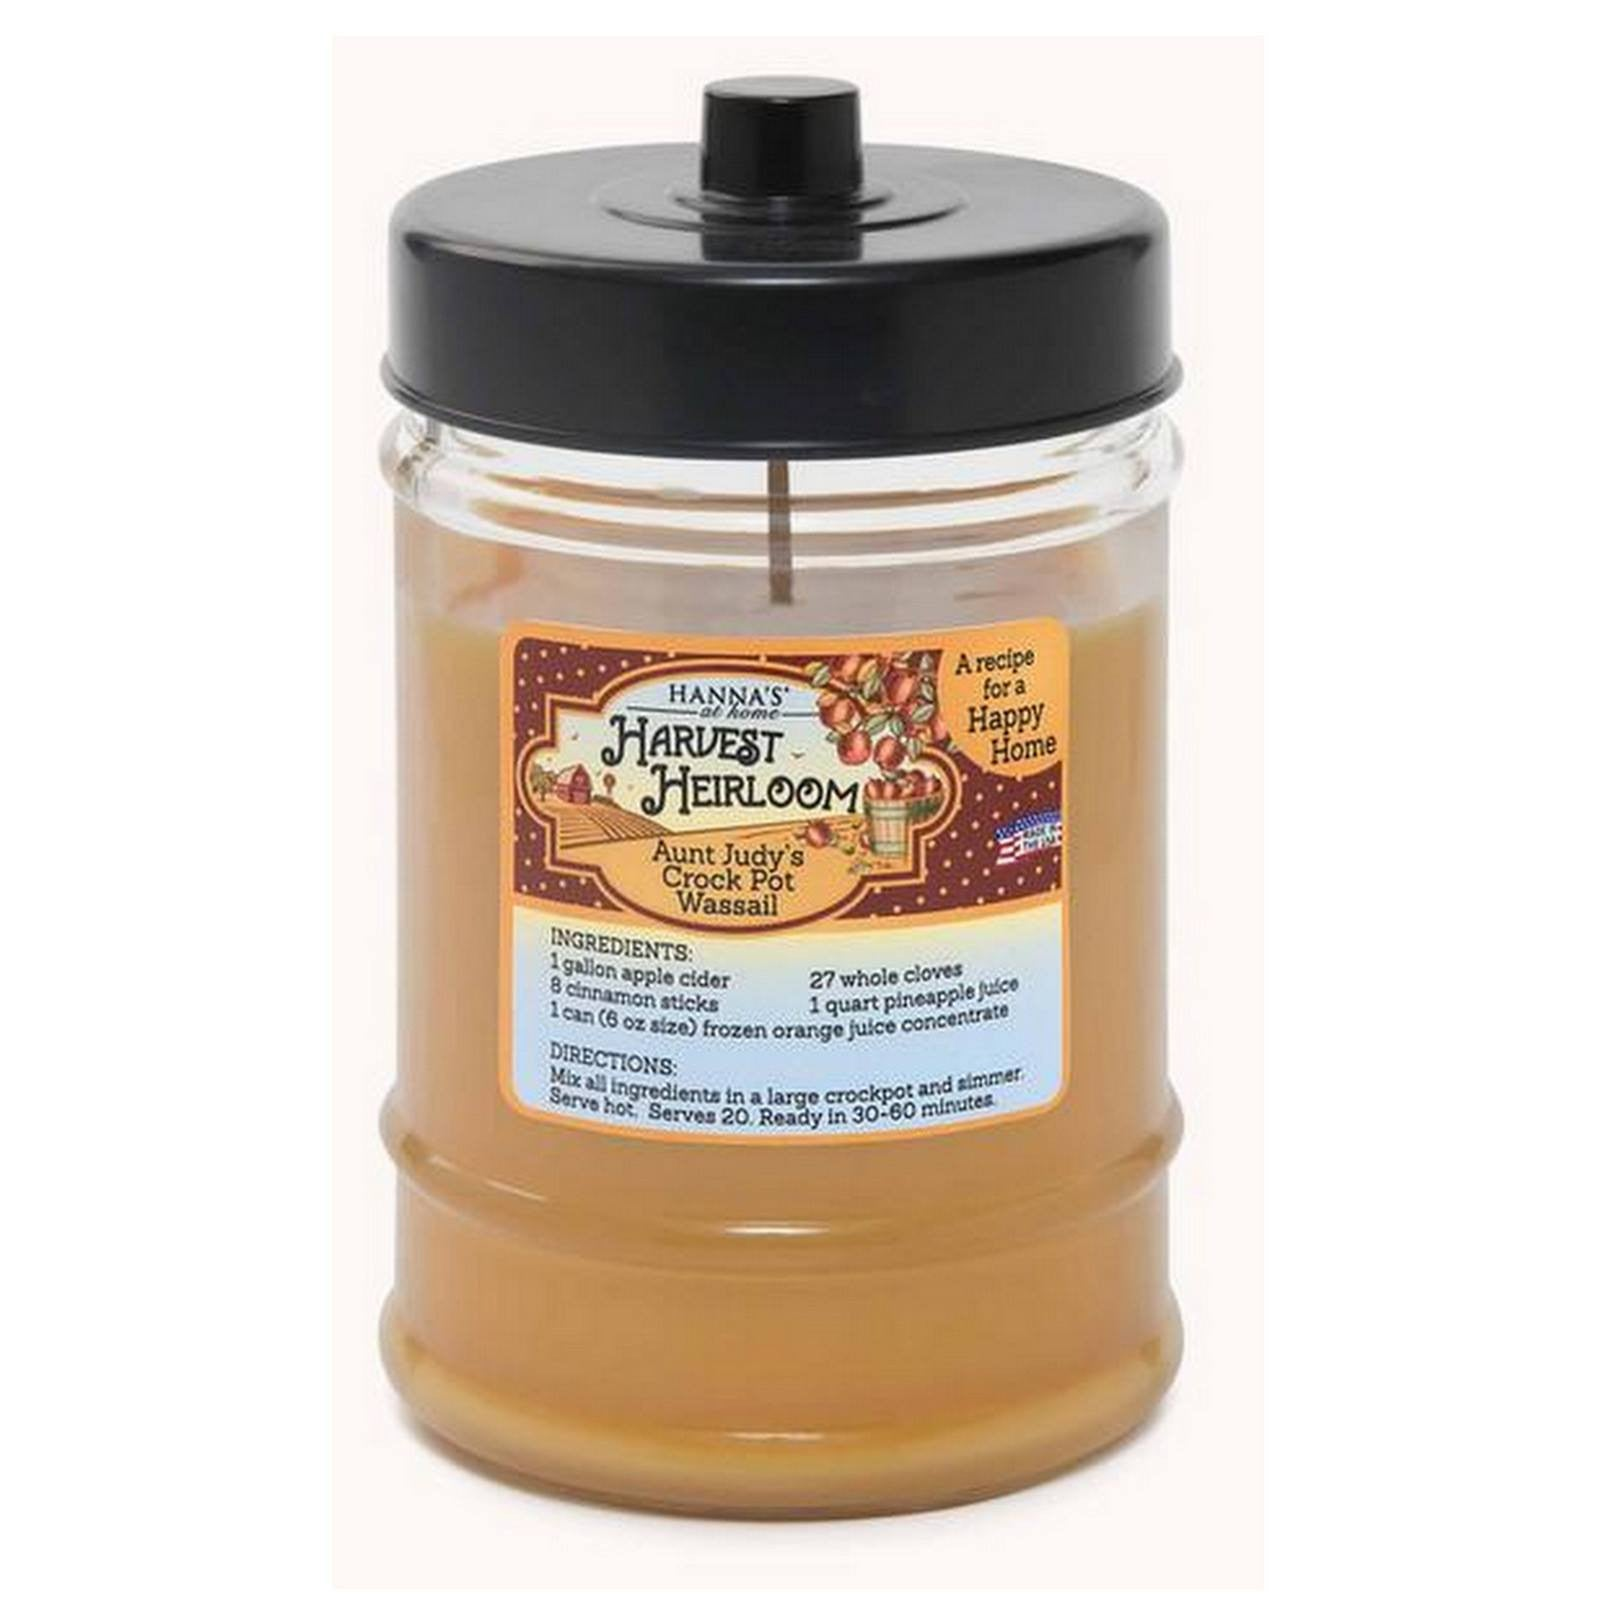 Harvest Heirloom Mulled Cider Scented Canister Jar Candle - Candlemart.com